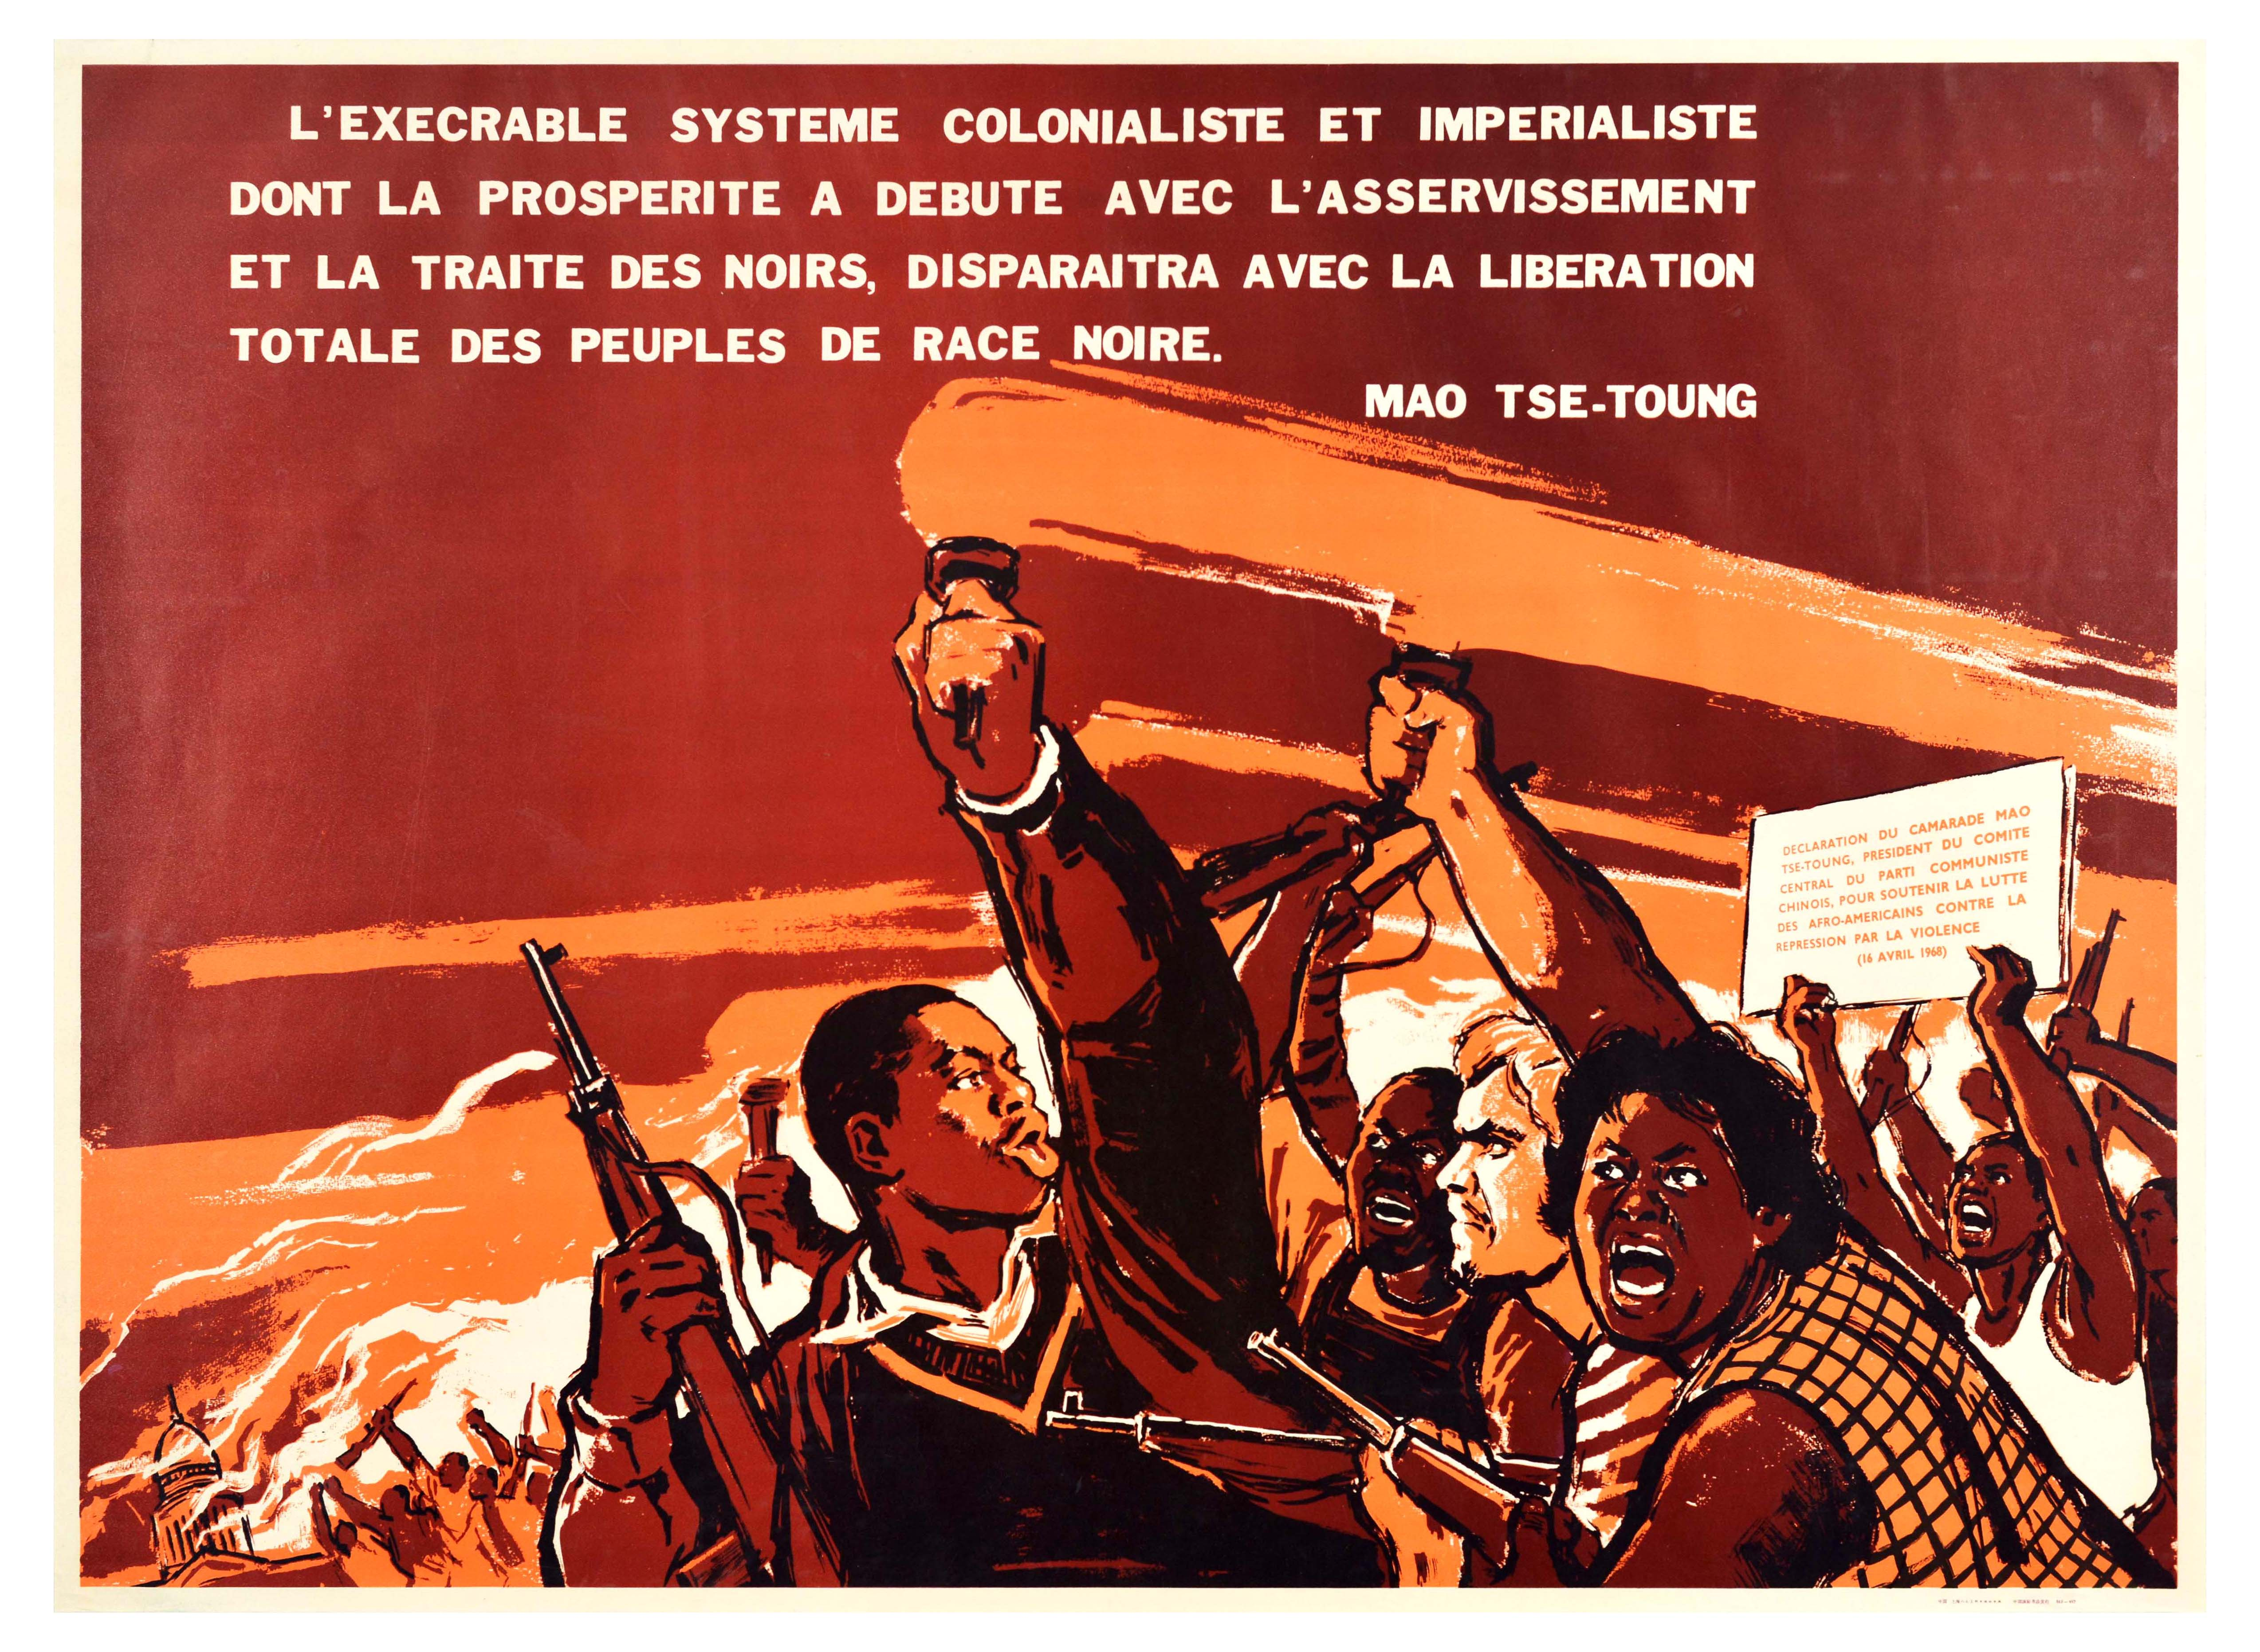 Propaganda Poster Colonialism Imperialism Black People Liberation